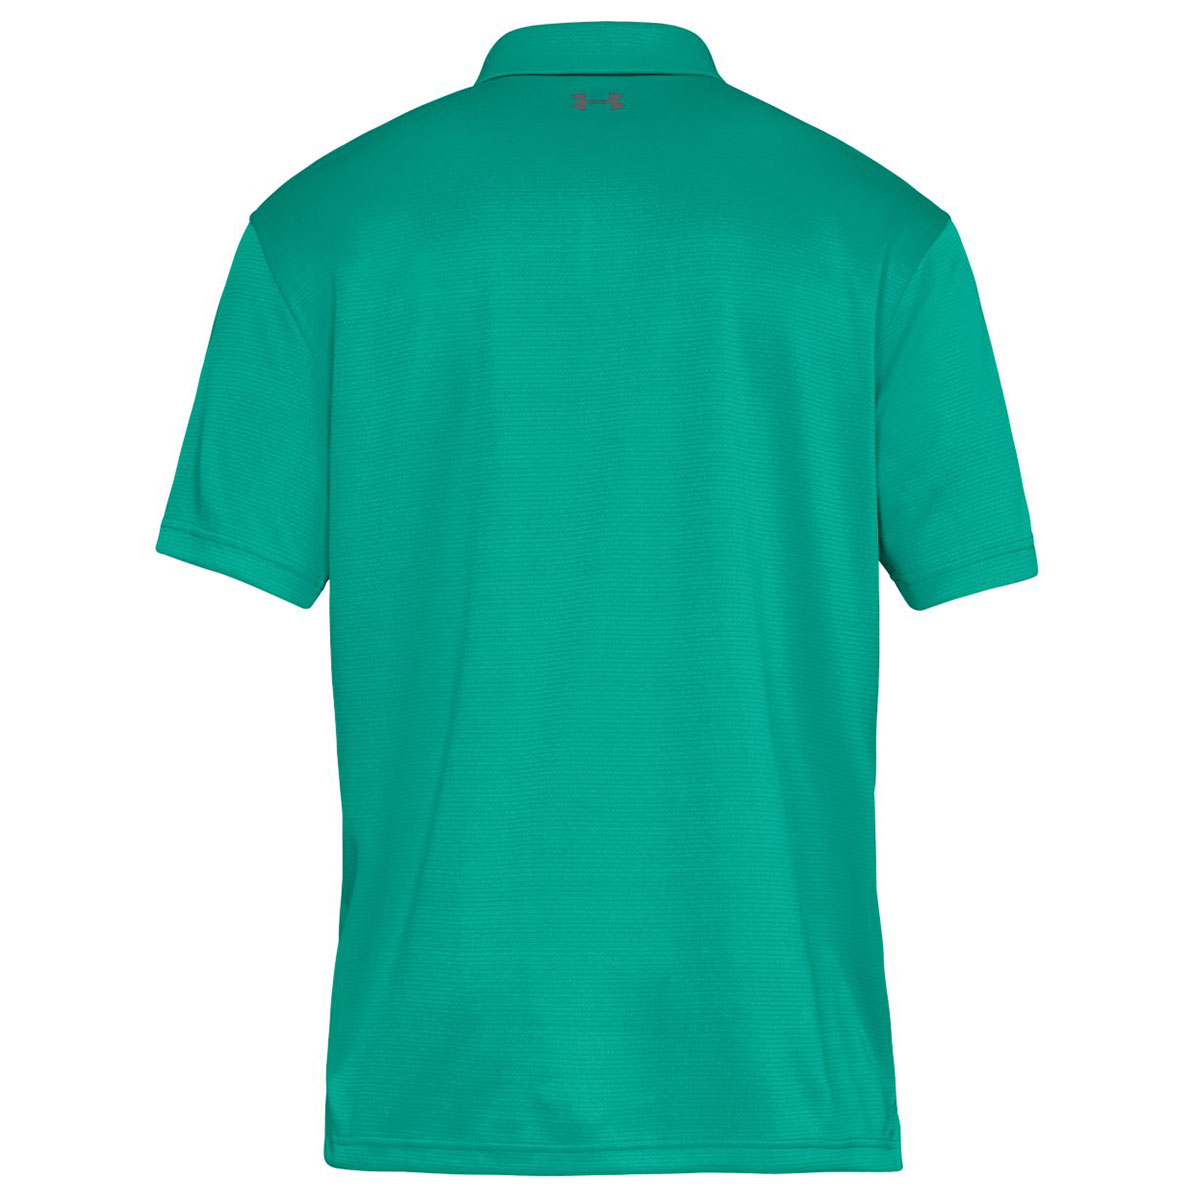 Under-Armour-Mens-2019-Golf-Tech-Wicking-Textured-Soft-Light-Polo-Shirt thumbnail 37